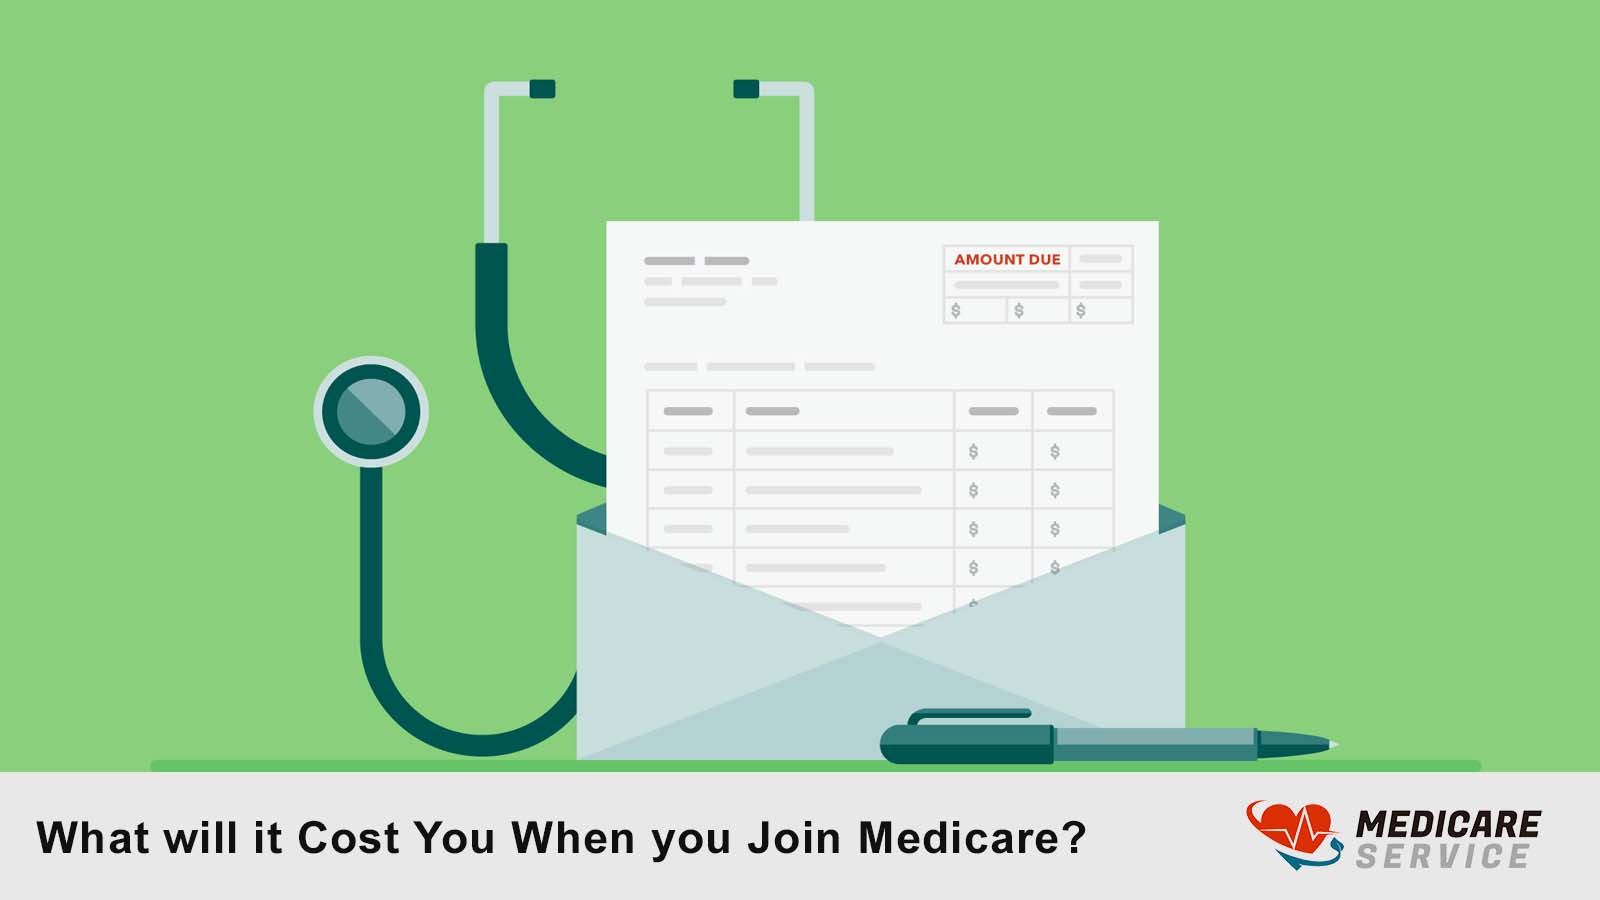 What will it Cost You When you Join Medicare?